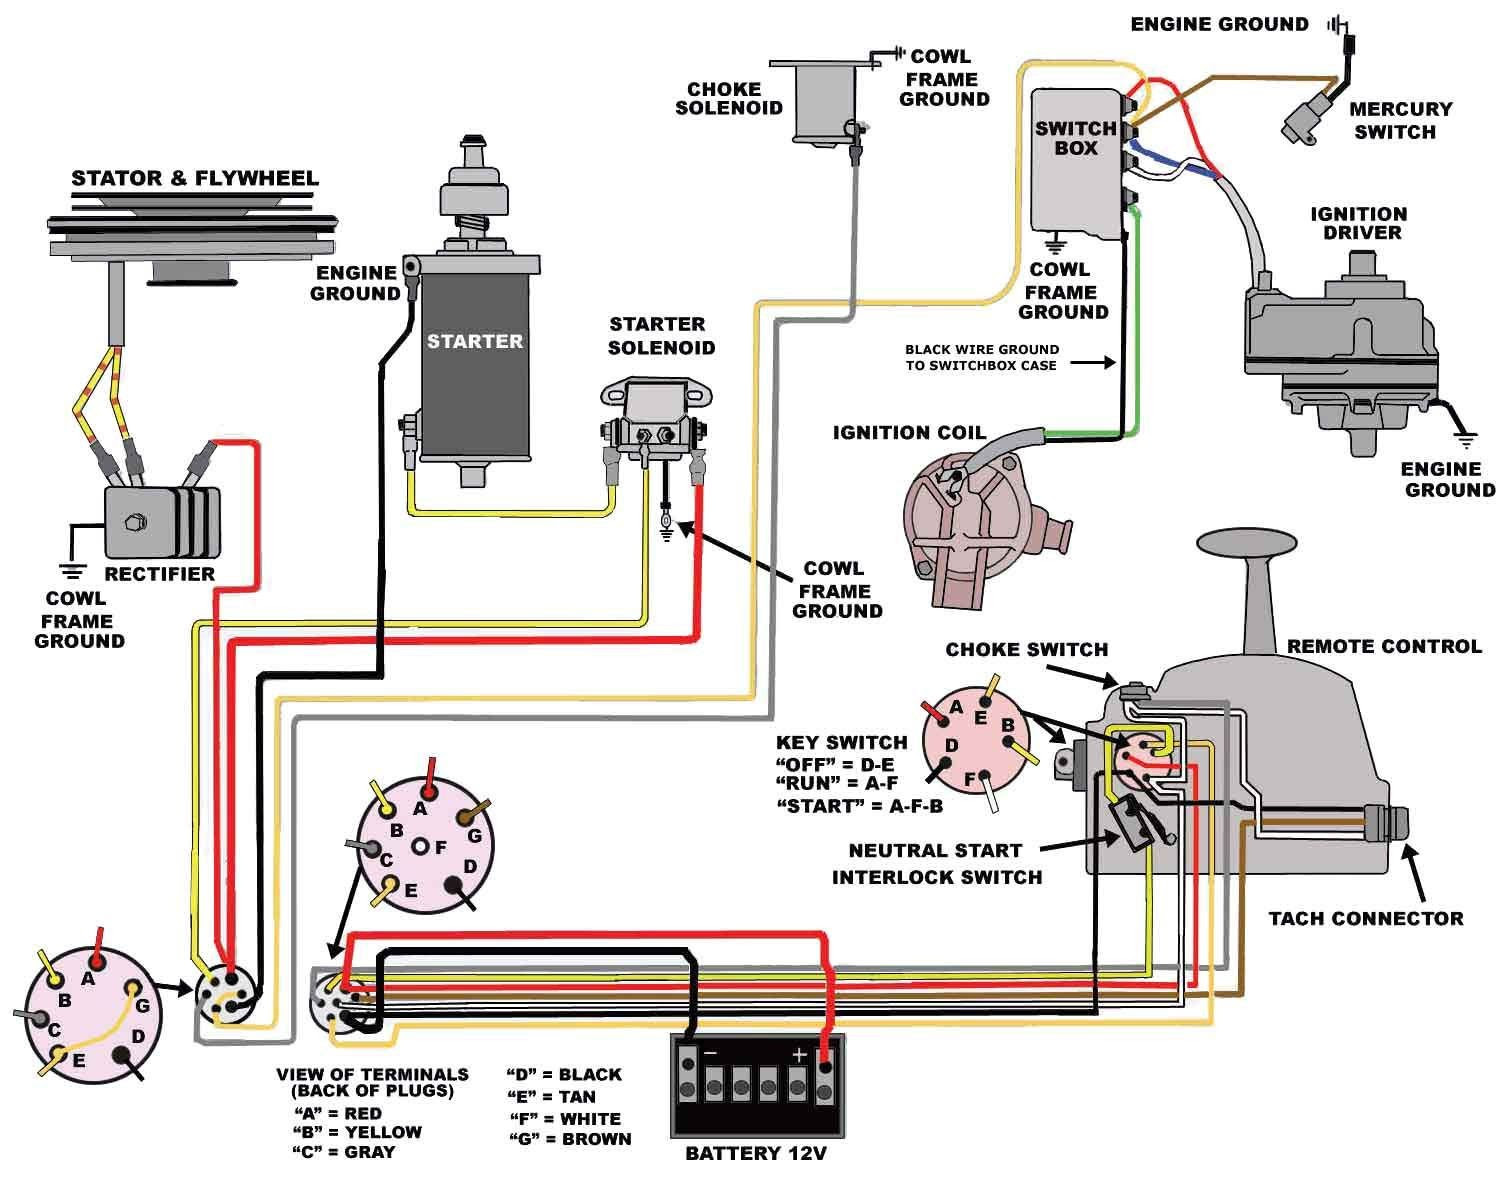 I Have An Issue W The Ignition Switch On A 35hp 1979 Wiring Diagram